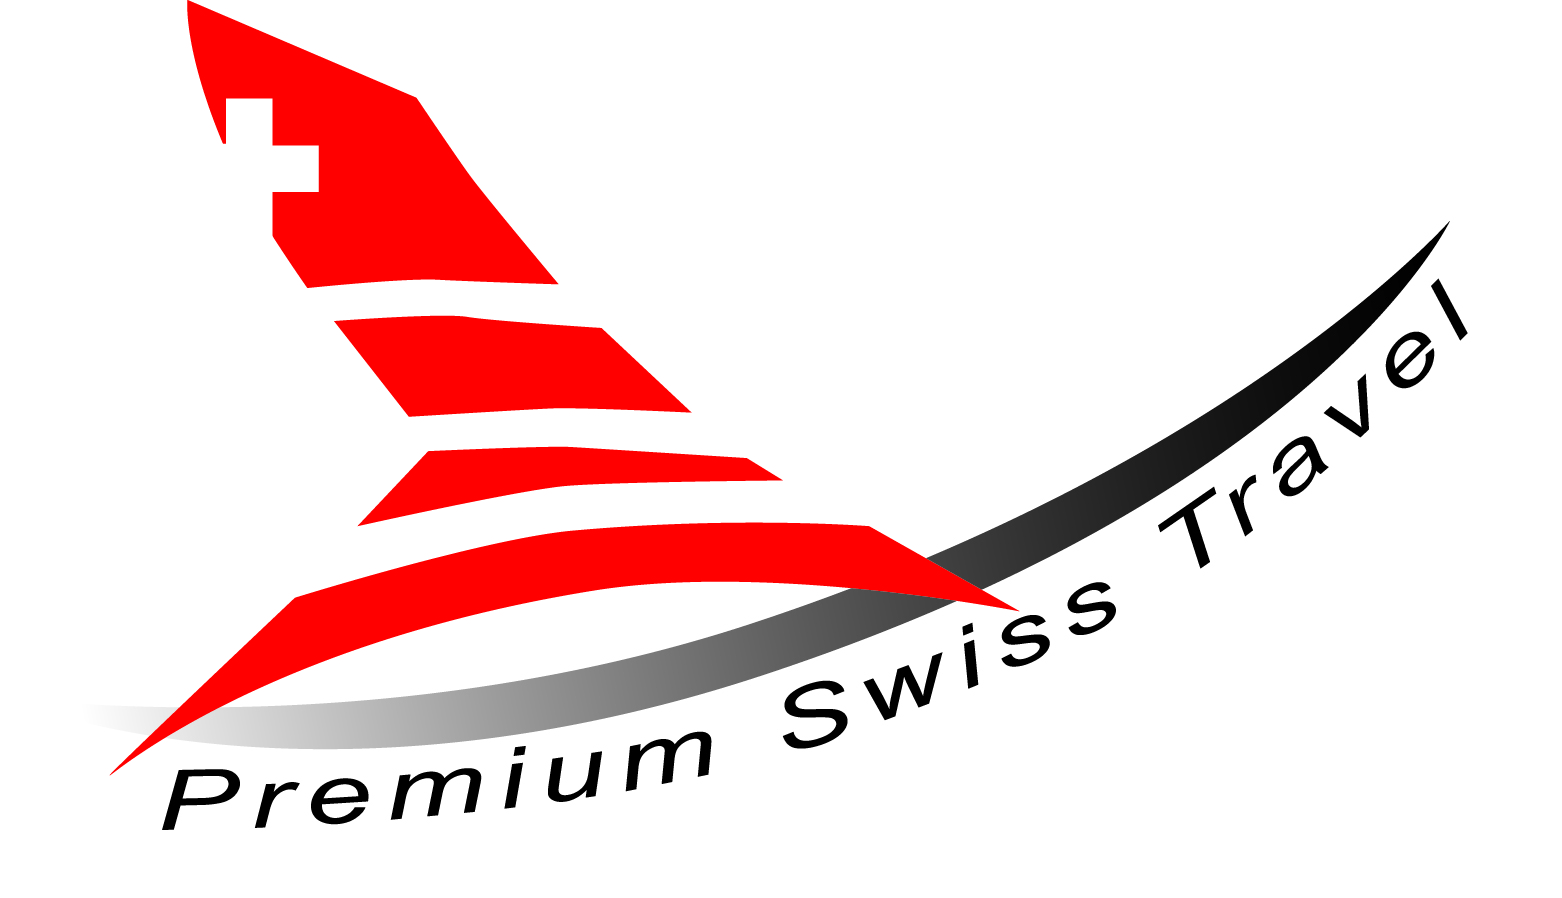 Premium Swiss Travel | Hello world! - Premium Swiss Travel